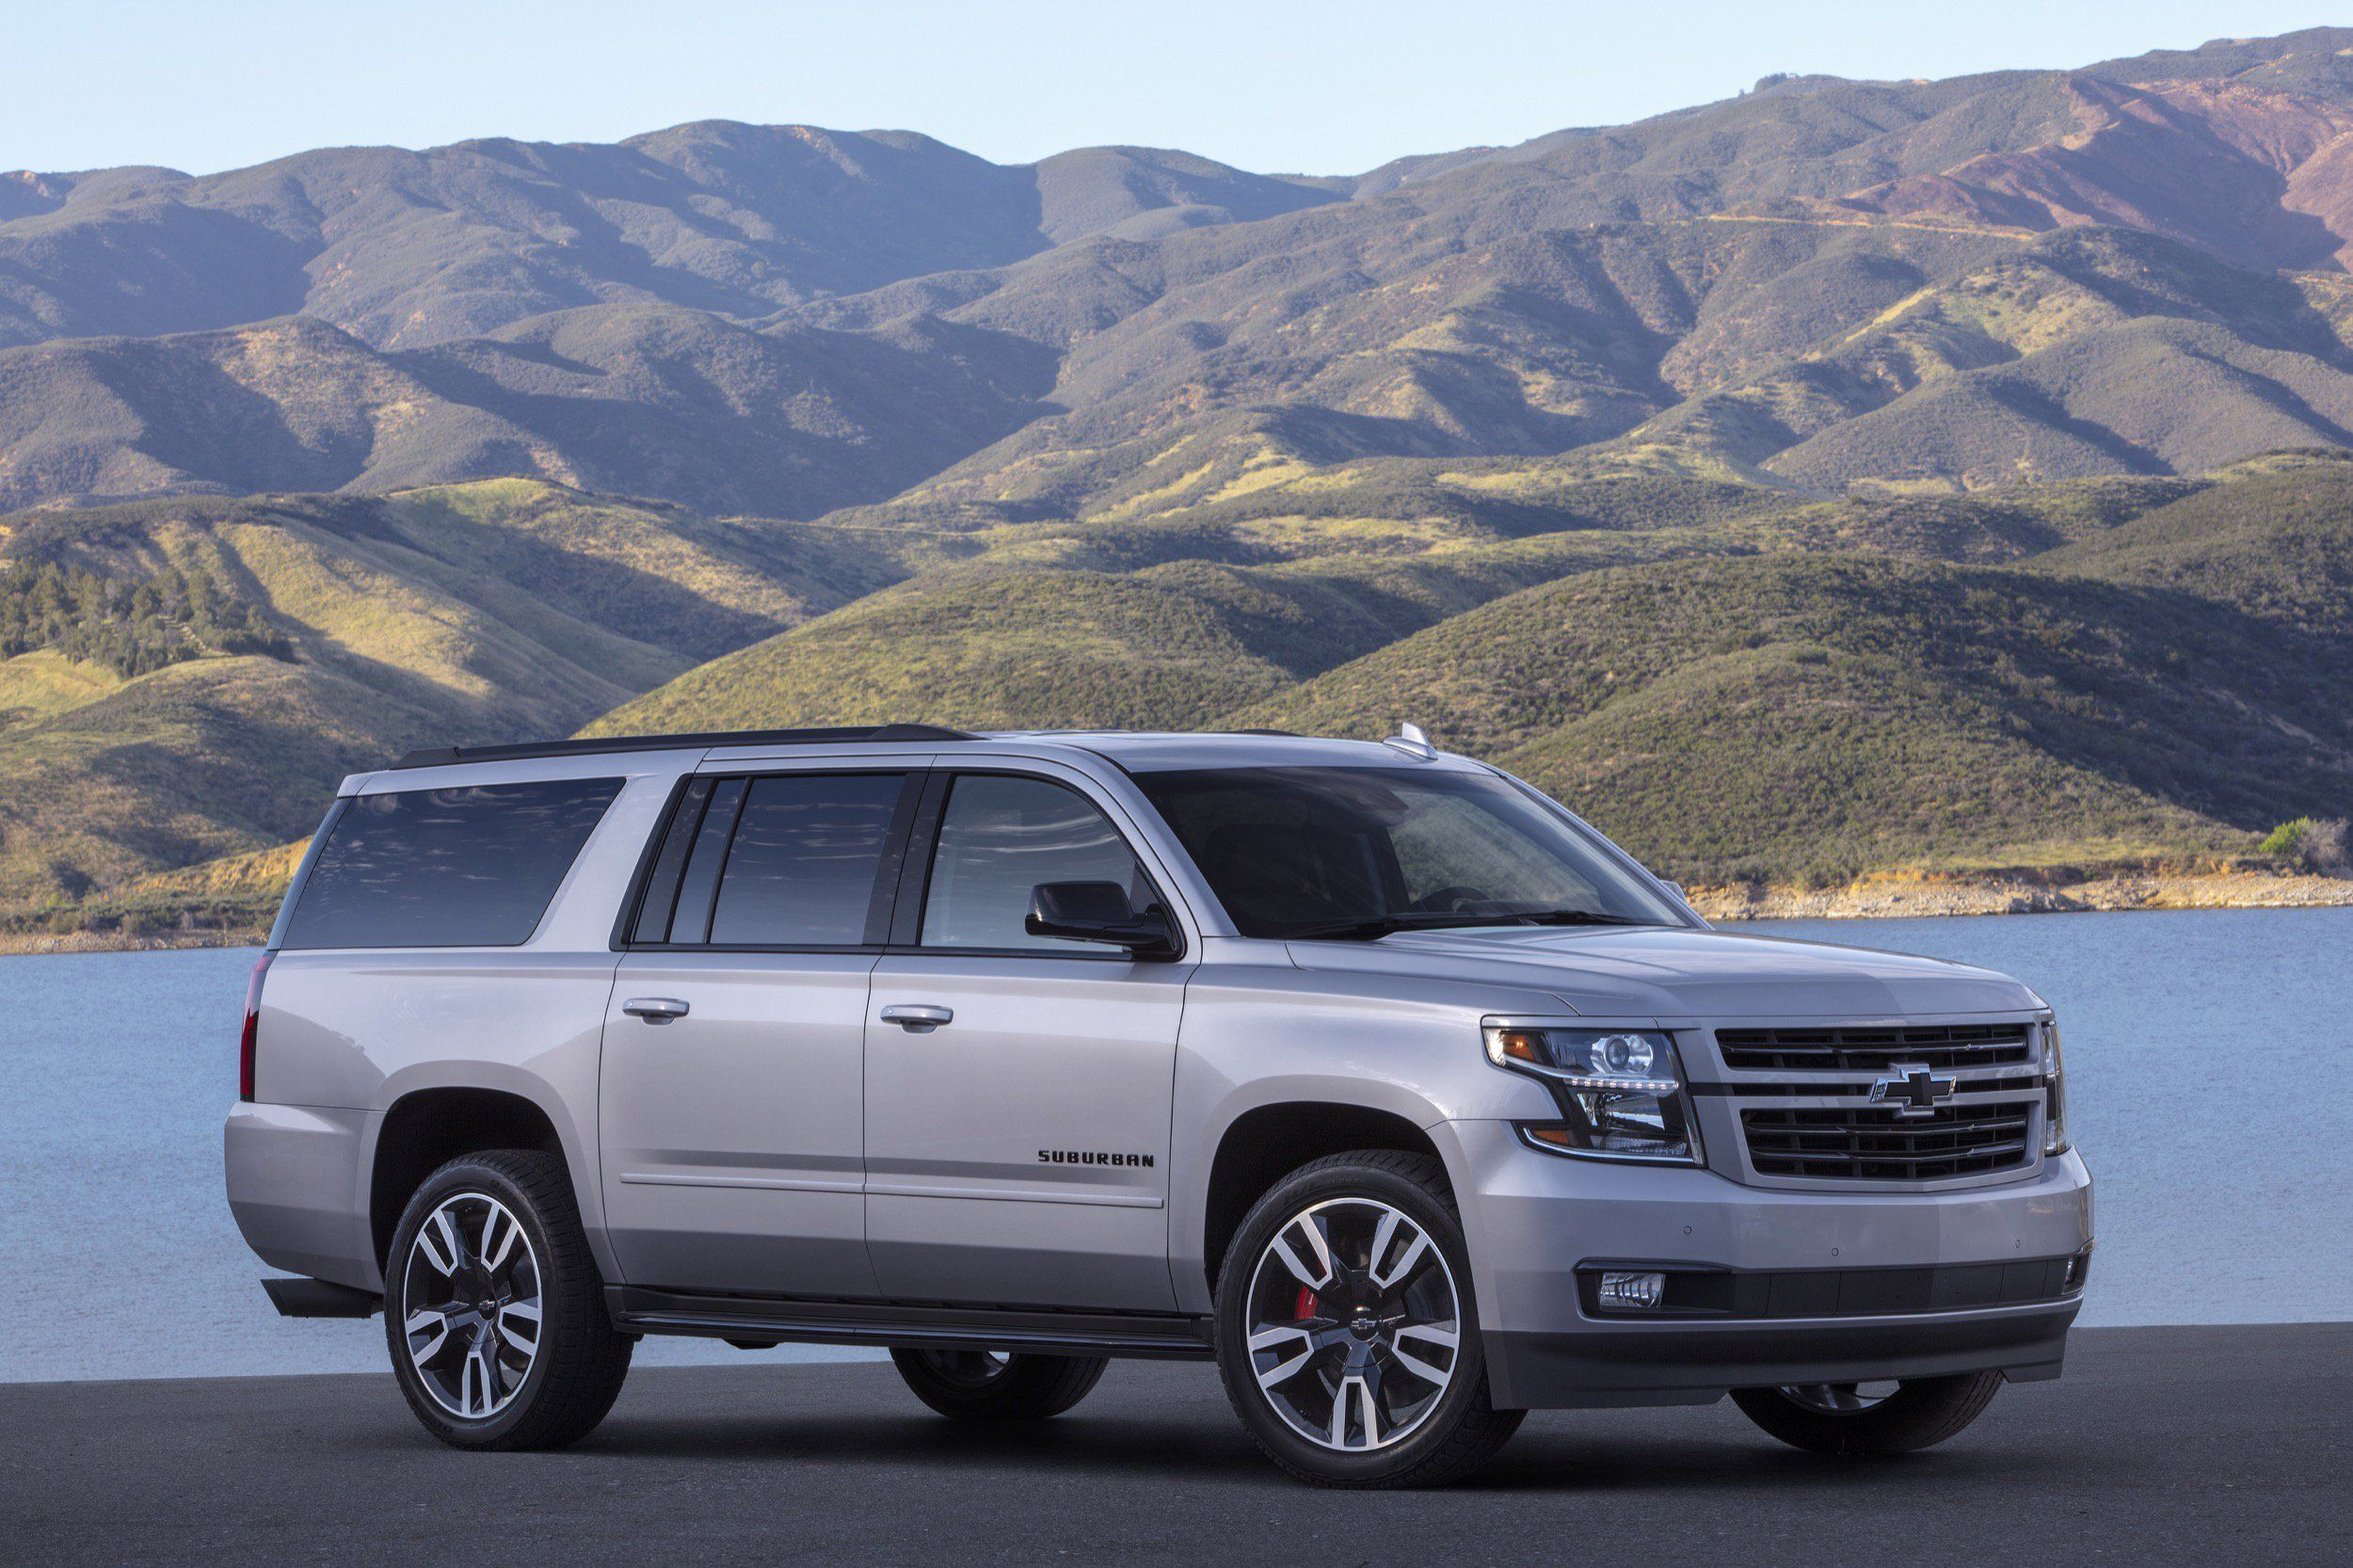 2019 Chevy Suburban Info Specs Wiki Gm Authority Chevrolet